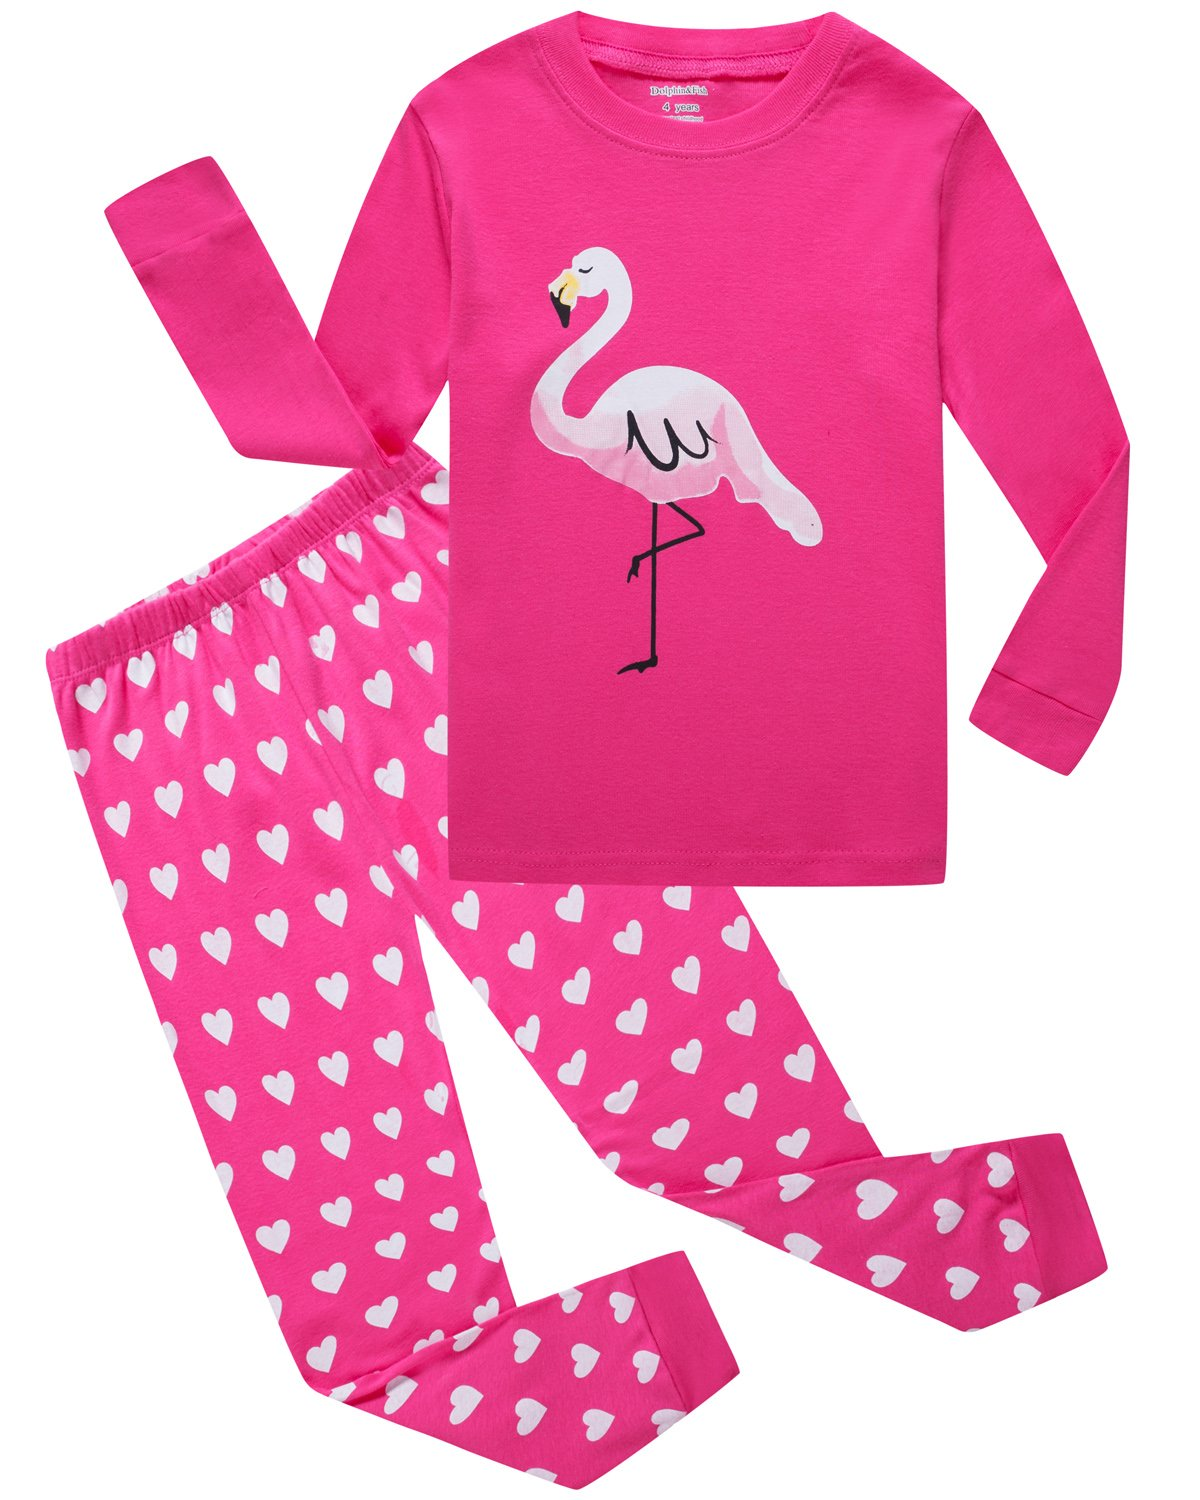 Girls Pajamas Flamingo Little Kids Pjs 100% Cotton Toddler Clothes Sleepwear Size 4T